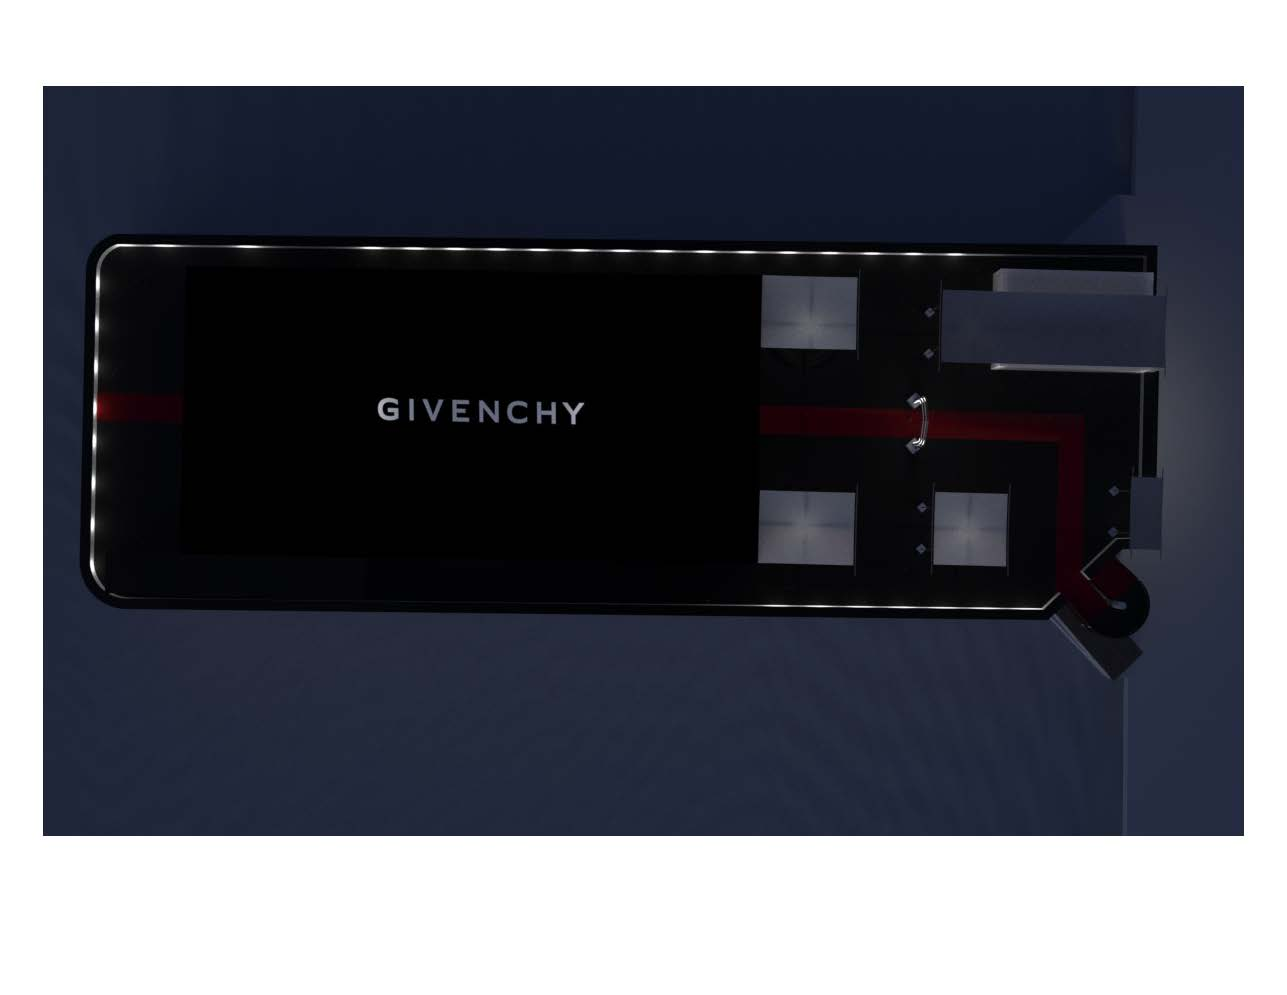 Givenchy aesthetical elements RESUME_Page_29.jpg